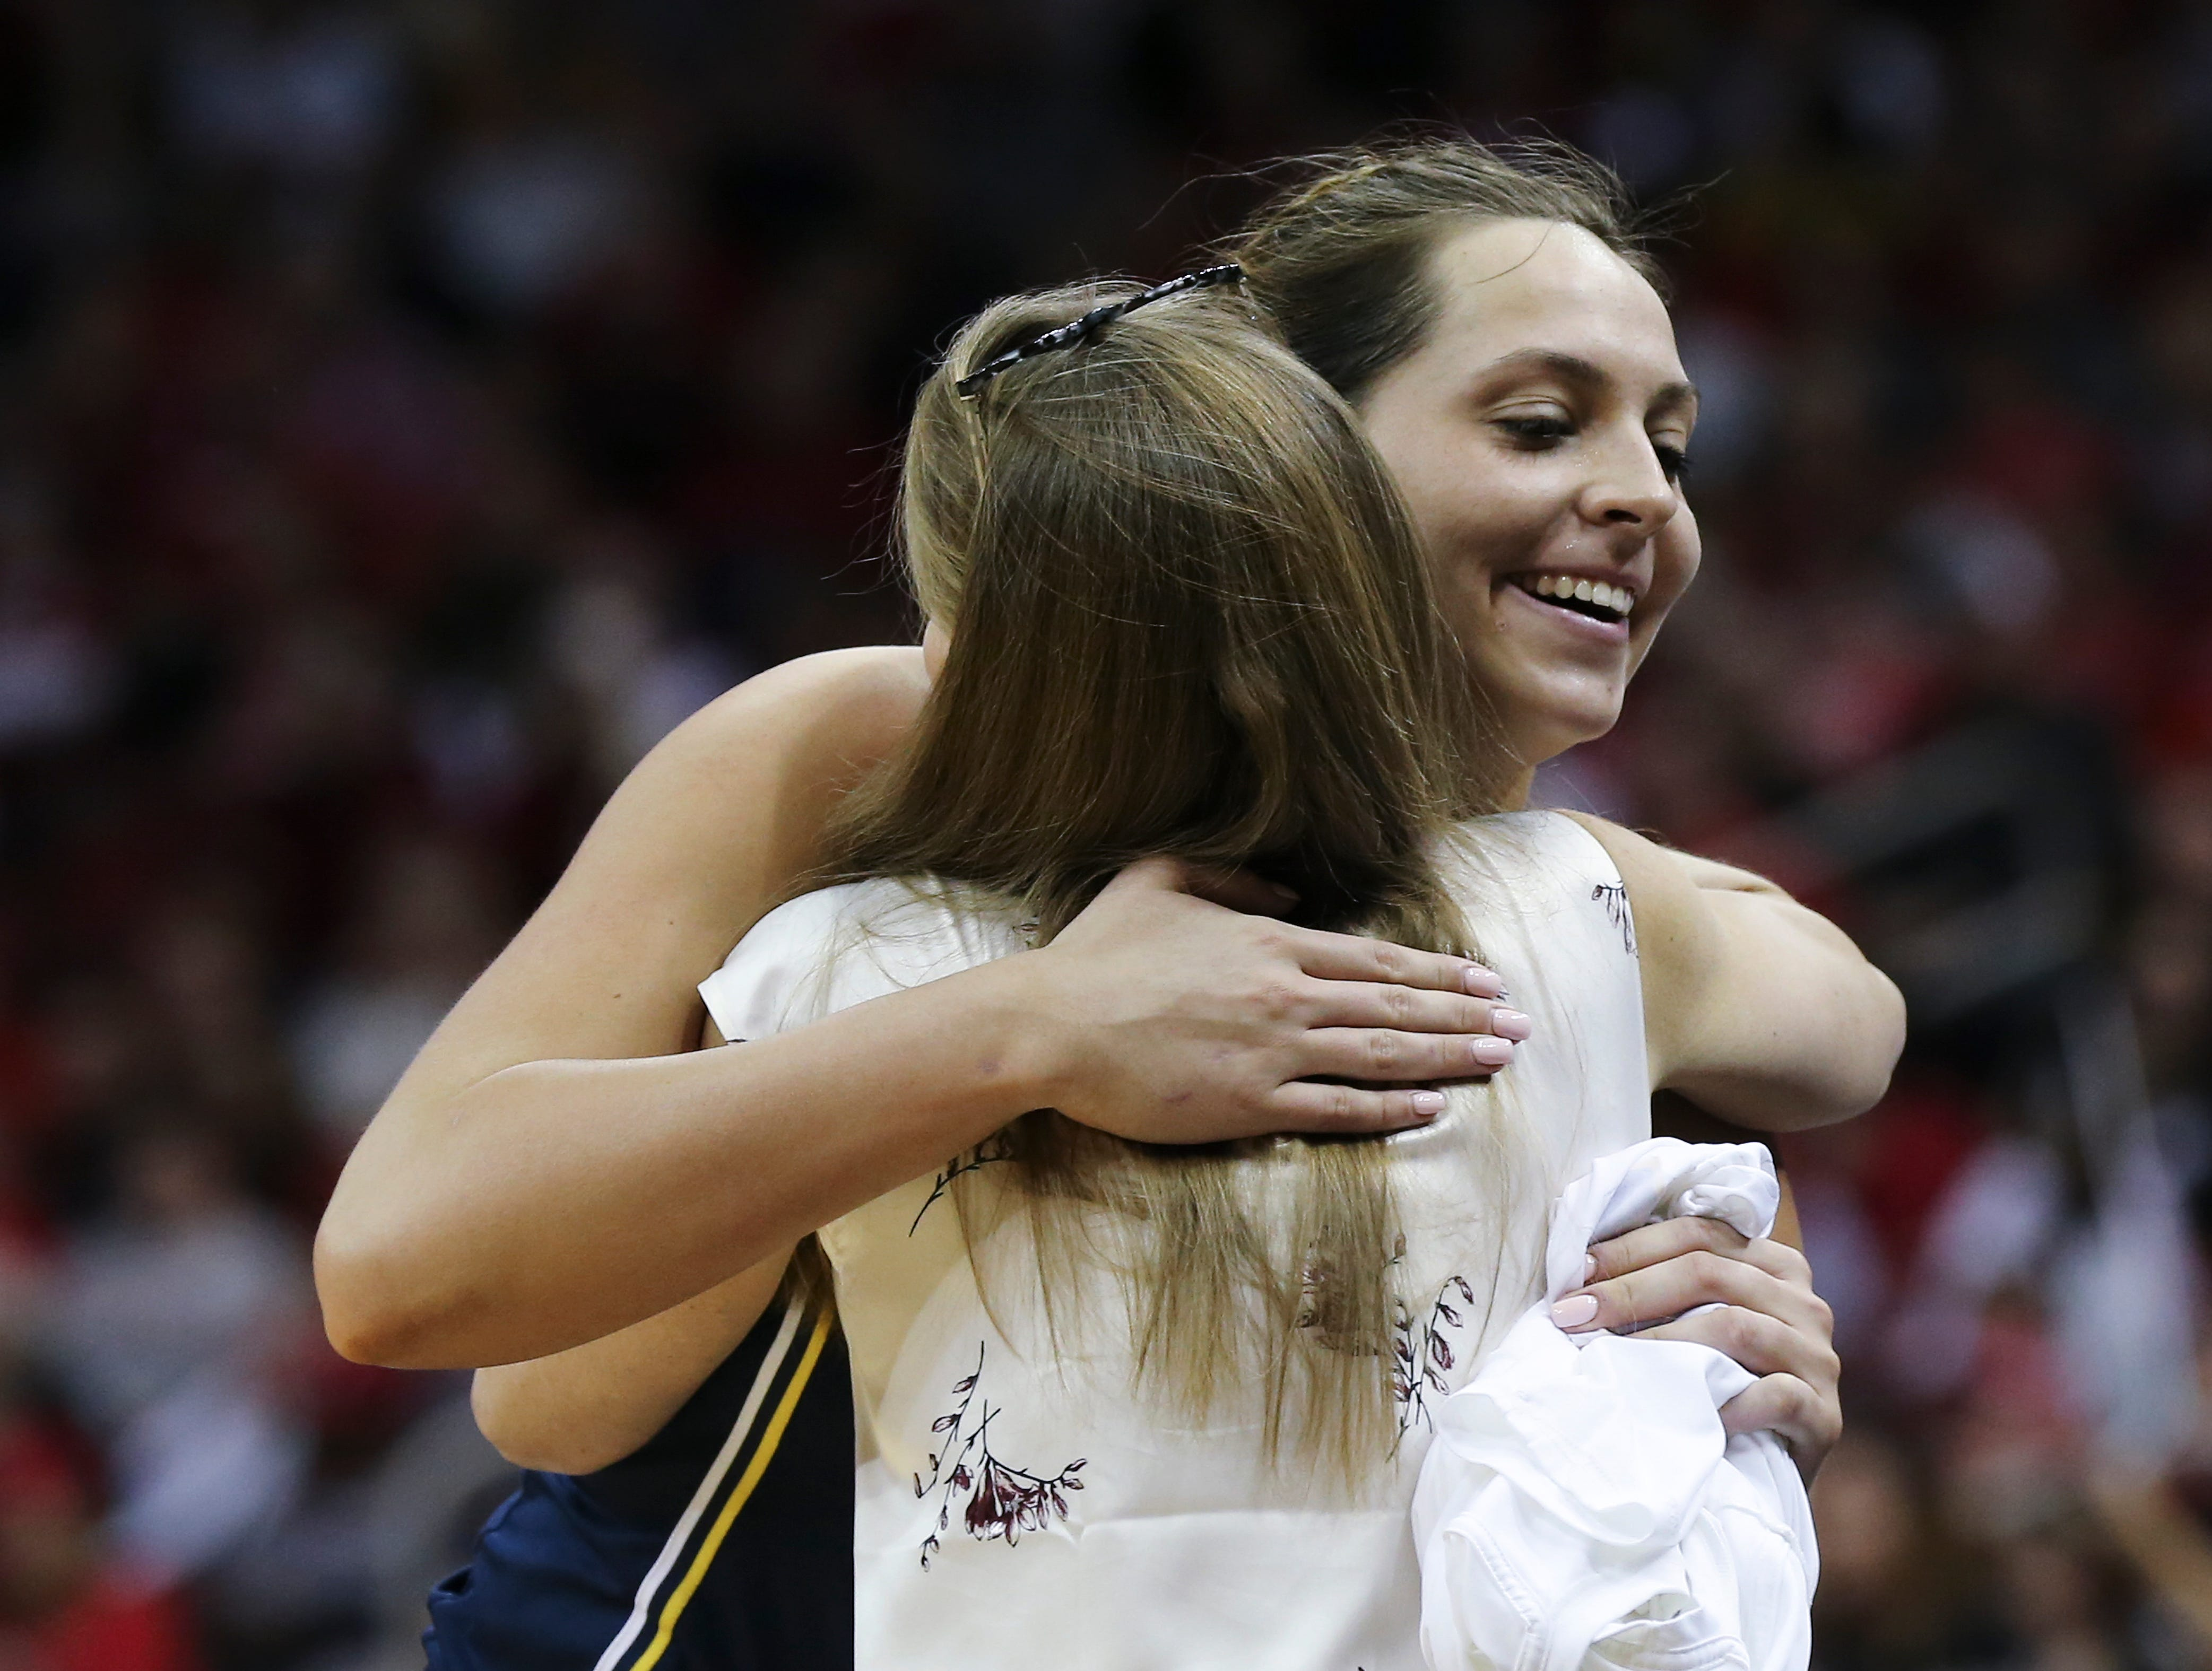 Michigan's Hallie Thome (30) embraced head coach Kim Barnes Arico during the closing minutes of their 71-50 loss to U of L in the second round of their NCAA Tournament game at the Yum Center.  Mar. 24, 2019